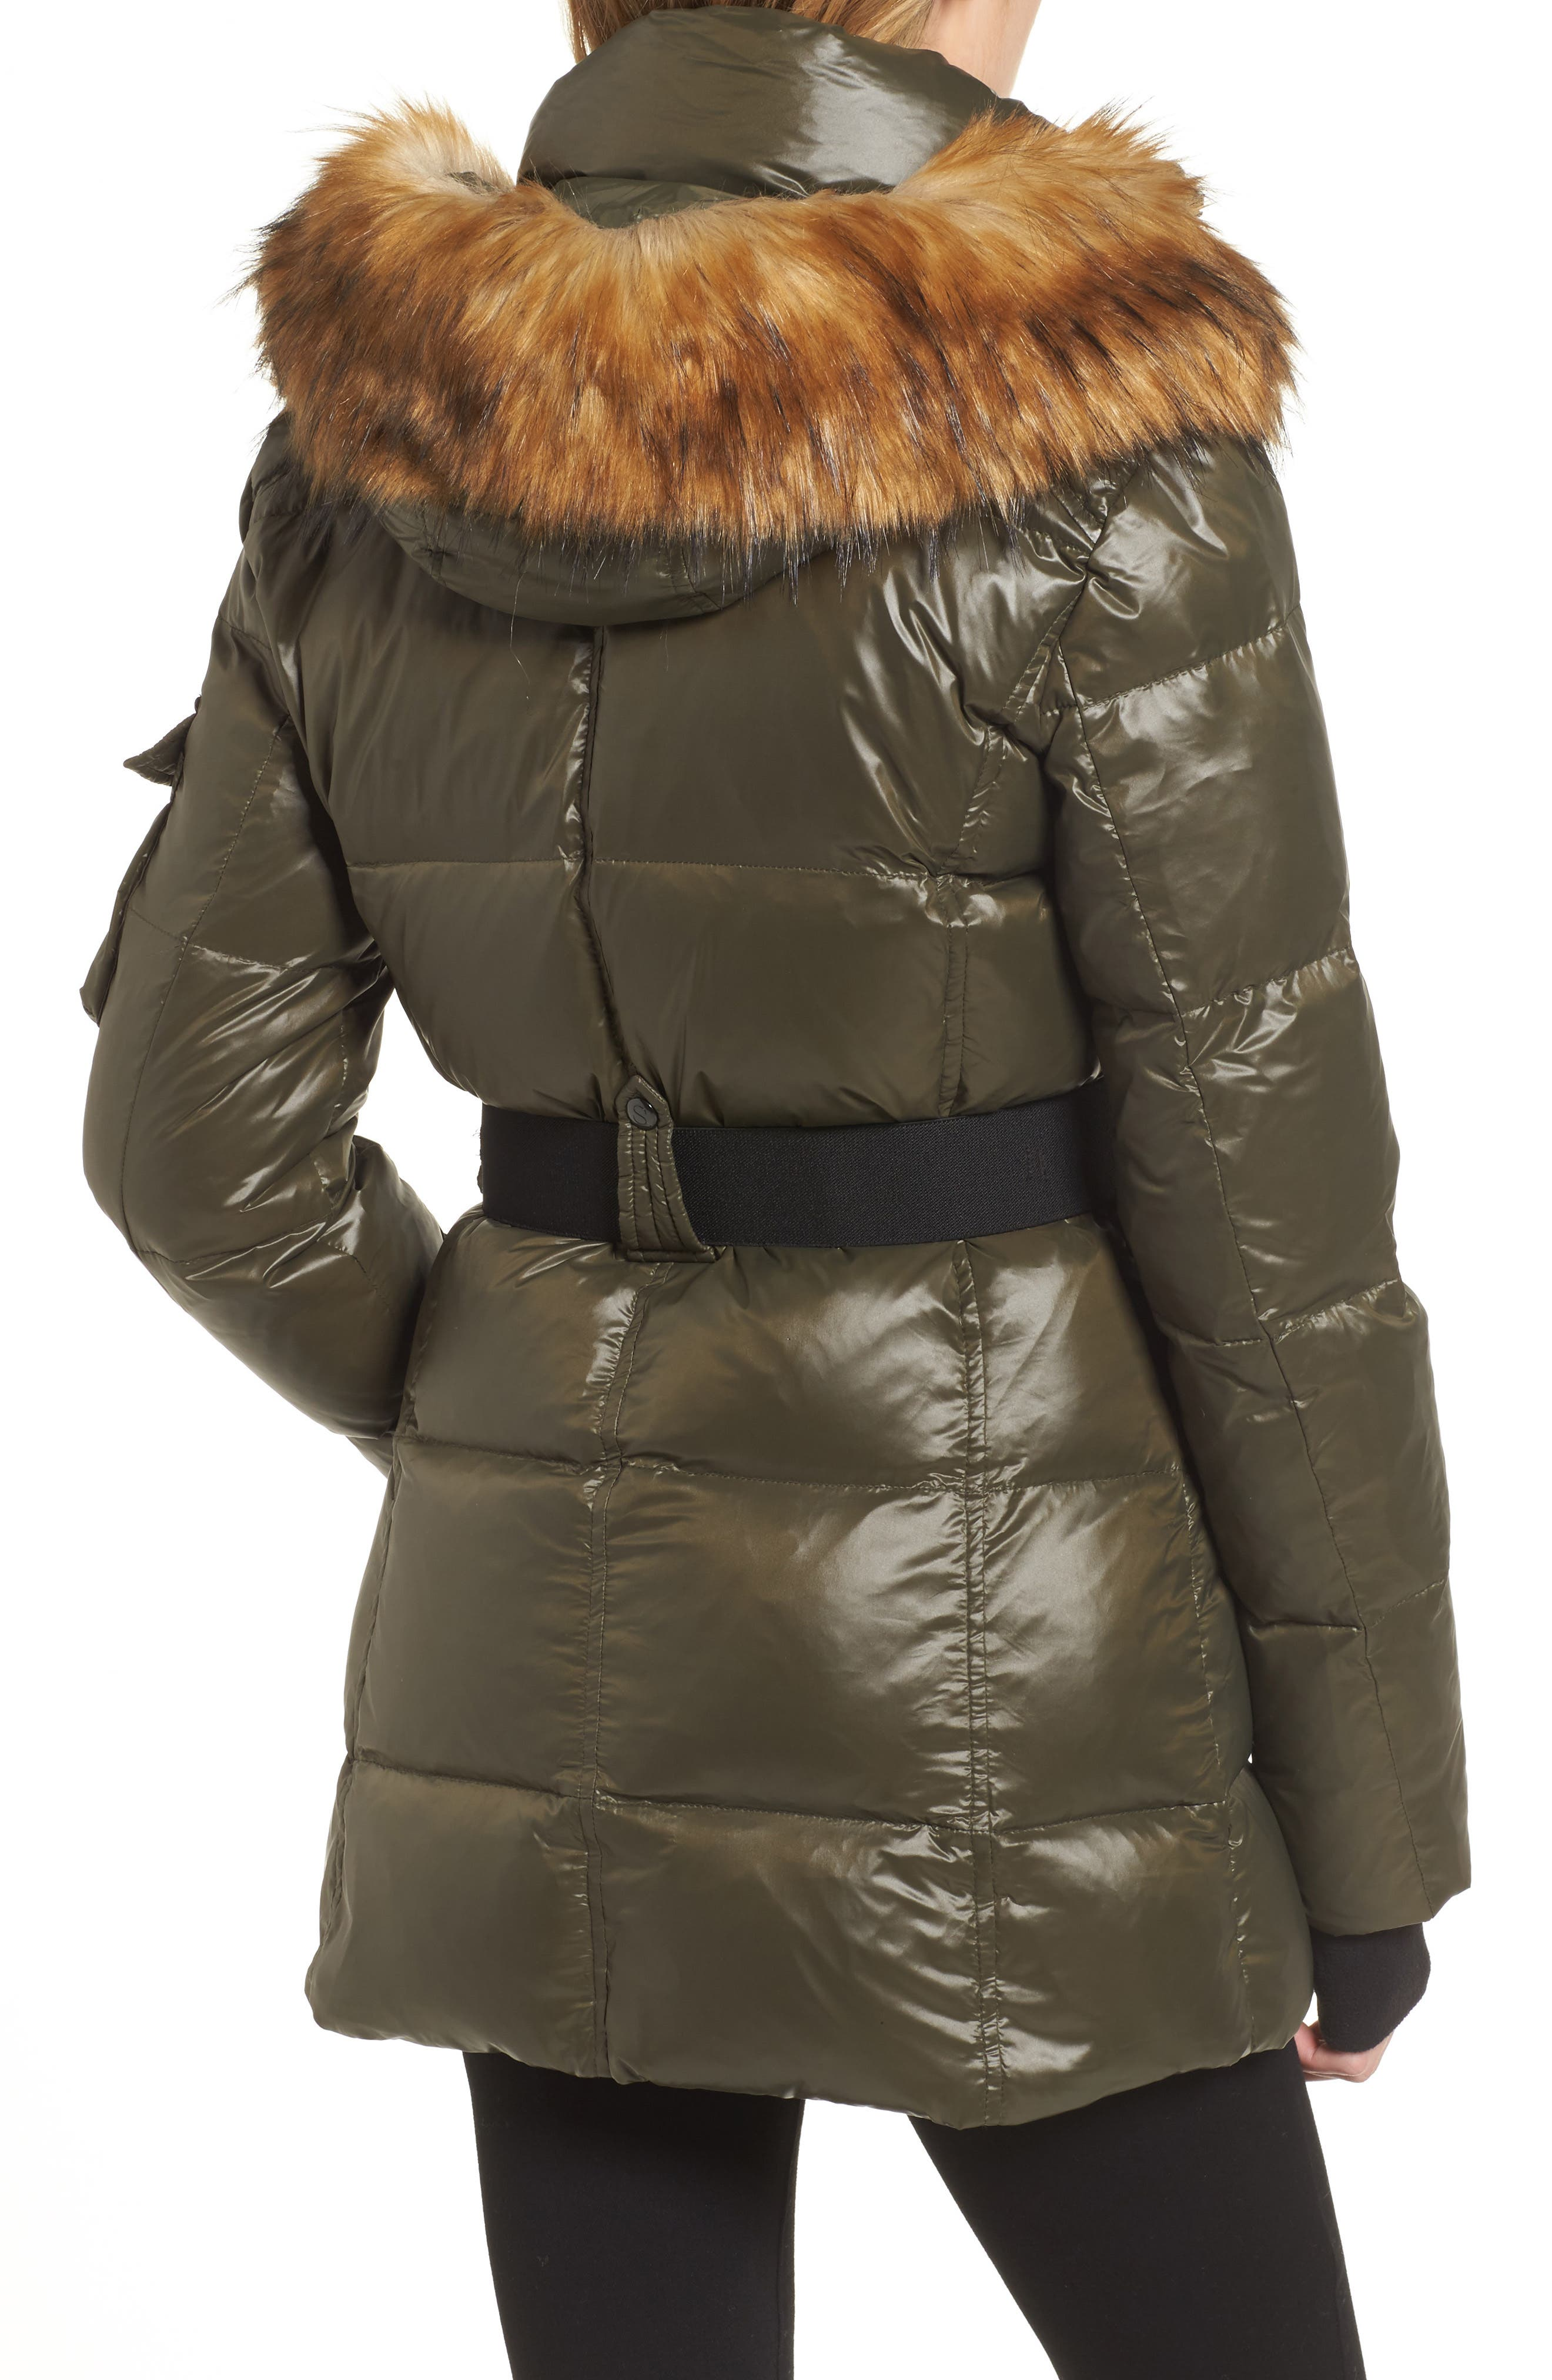 S13 'Nicky' Quilted Coat with Removable Faux Fur Trimmed Hood,                             Alternate thumbnail 2, color,                             304